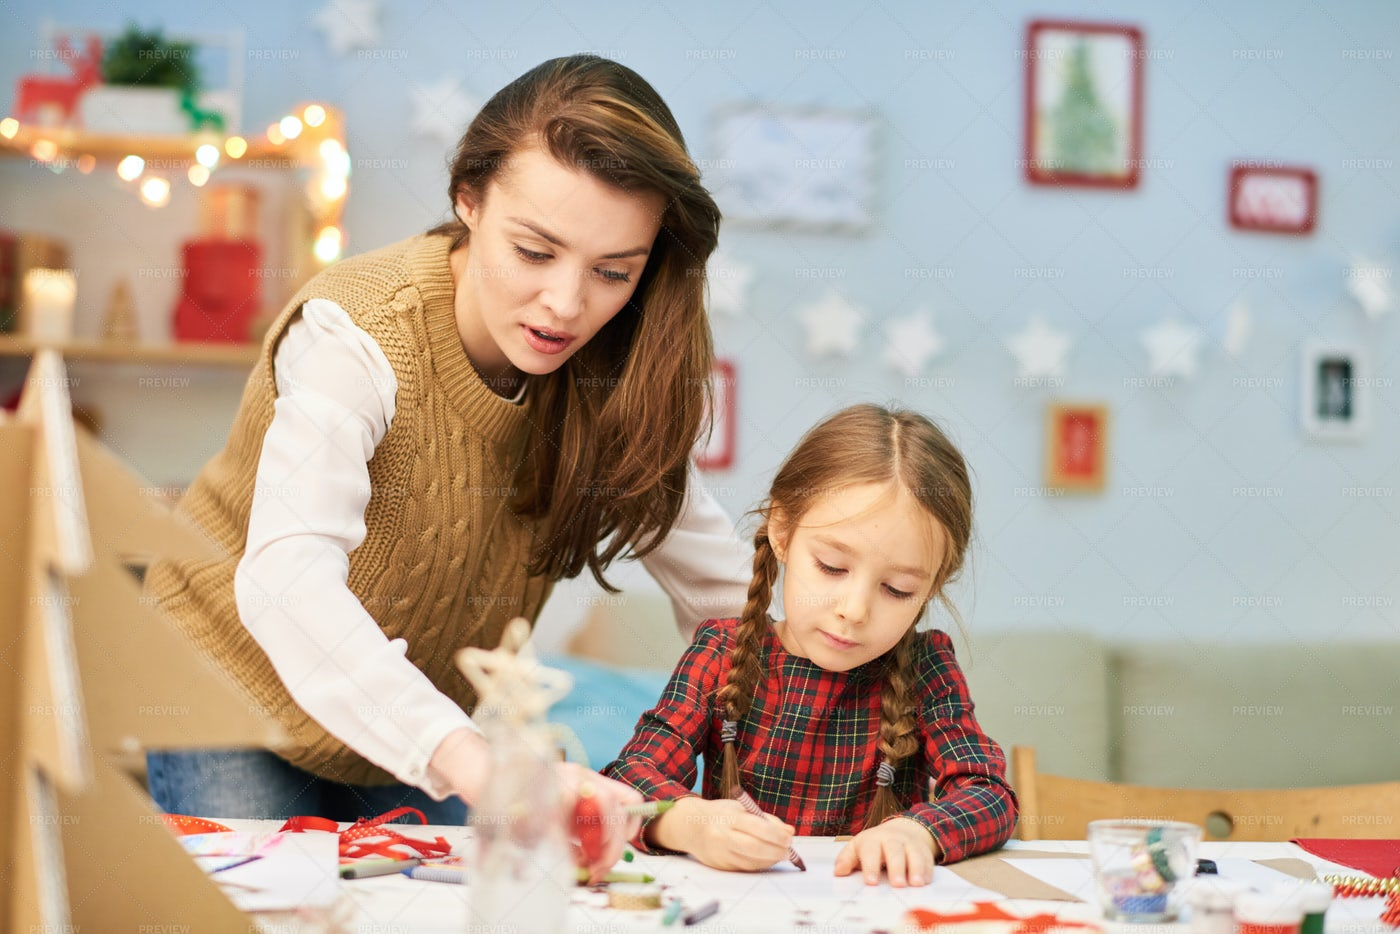 Making Christmas Card With Mom: Stock Photos